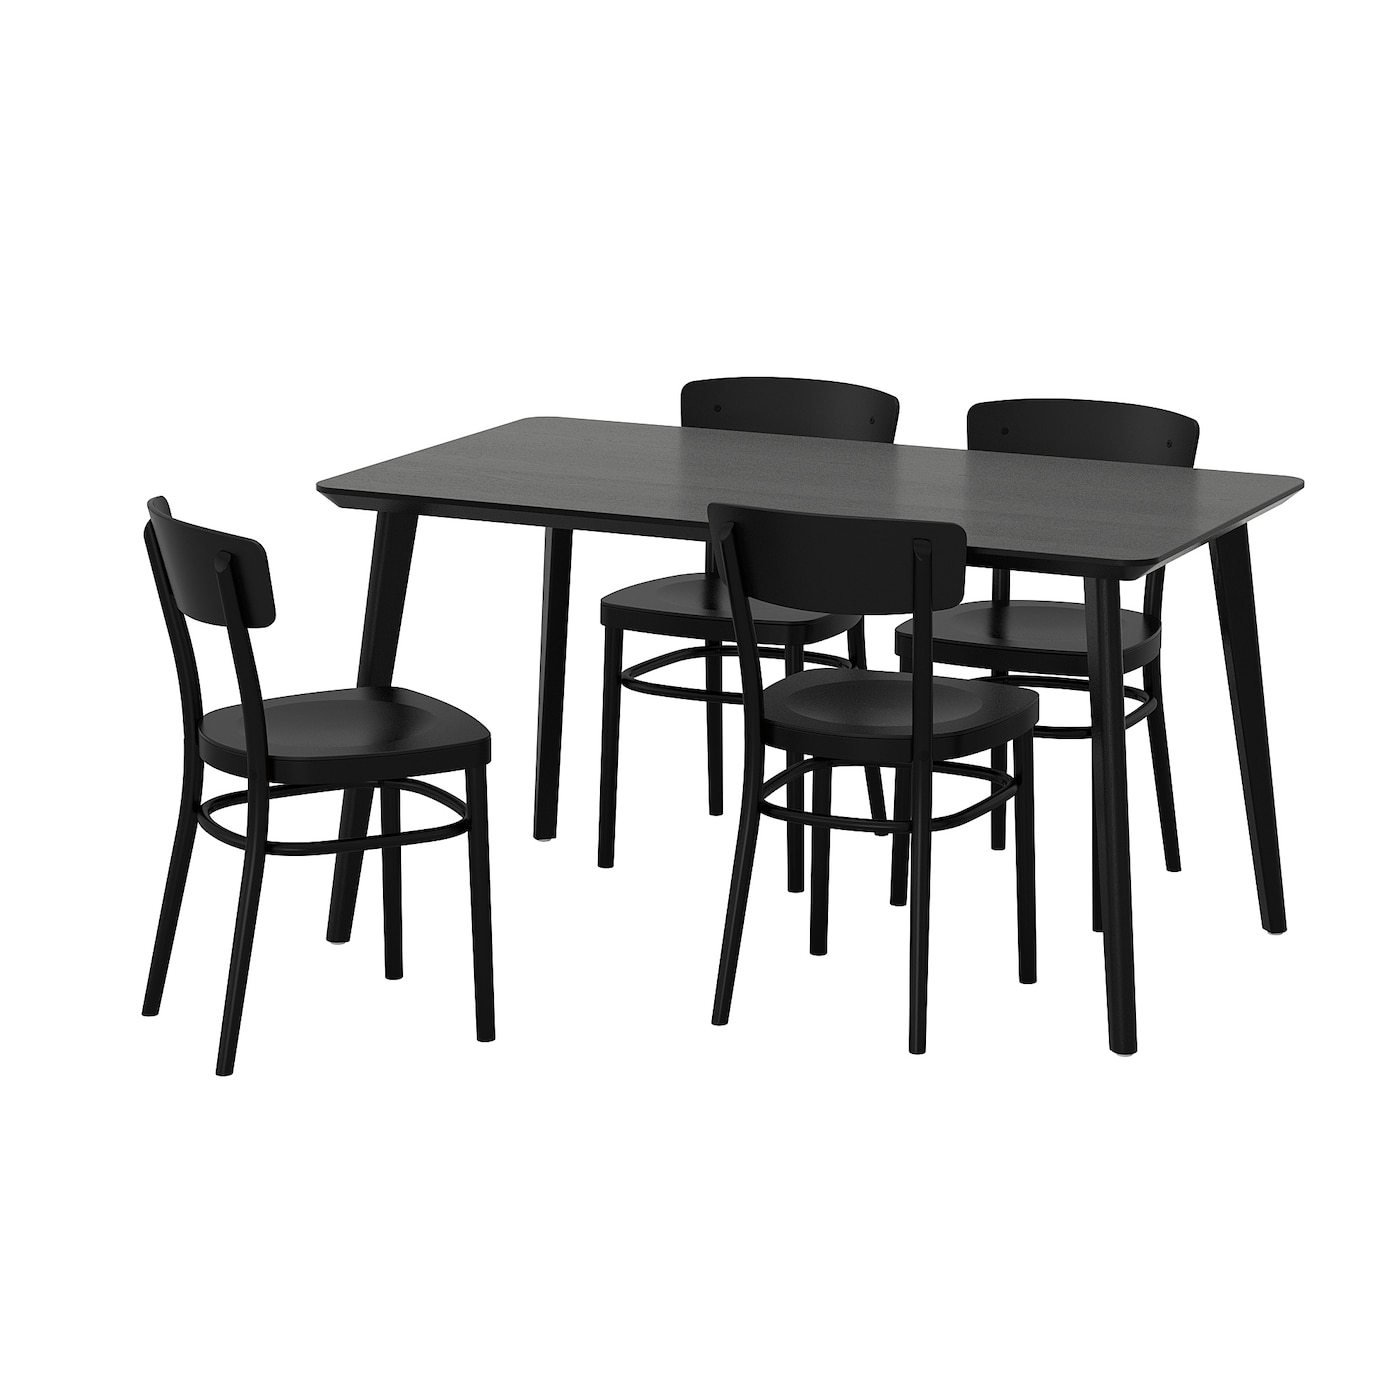 Idolf lisabo table and 4 chairs black black 140x78 cm ikea for Ikea dining table and chairs set